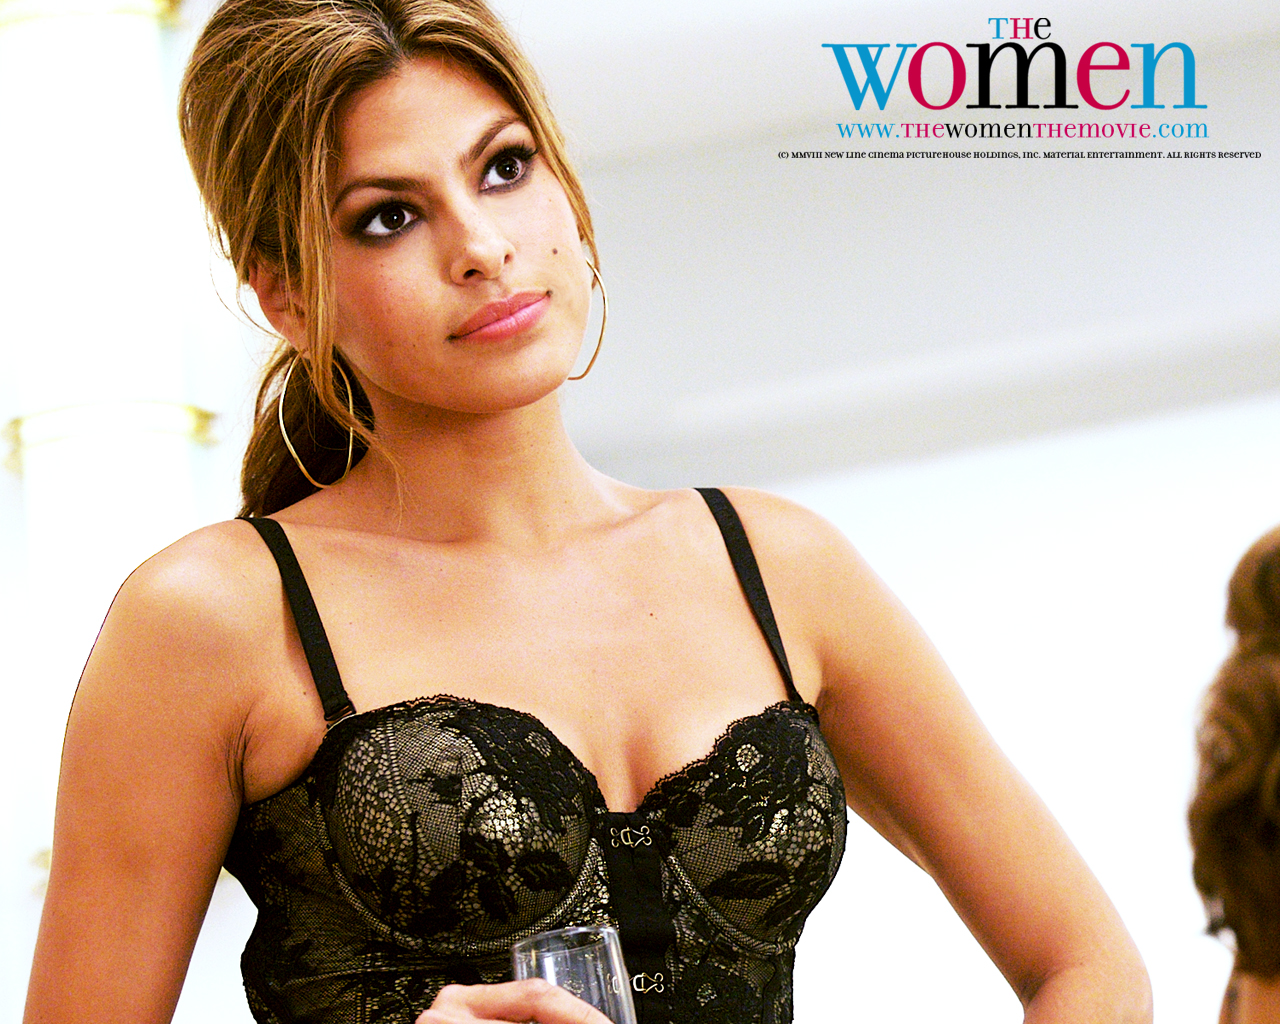 http://3.bp.blogspot.com/-3wSdmGejt20/Tmr4I_AmygI/AAAAAAAACYQ/WV9LwJetT3w/s1600/Eva_Mendes_in_The_Women_Wallpaper_1_800.jpg